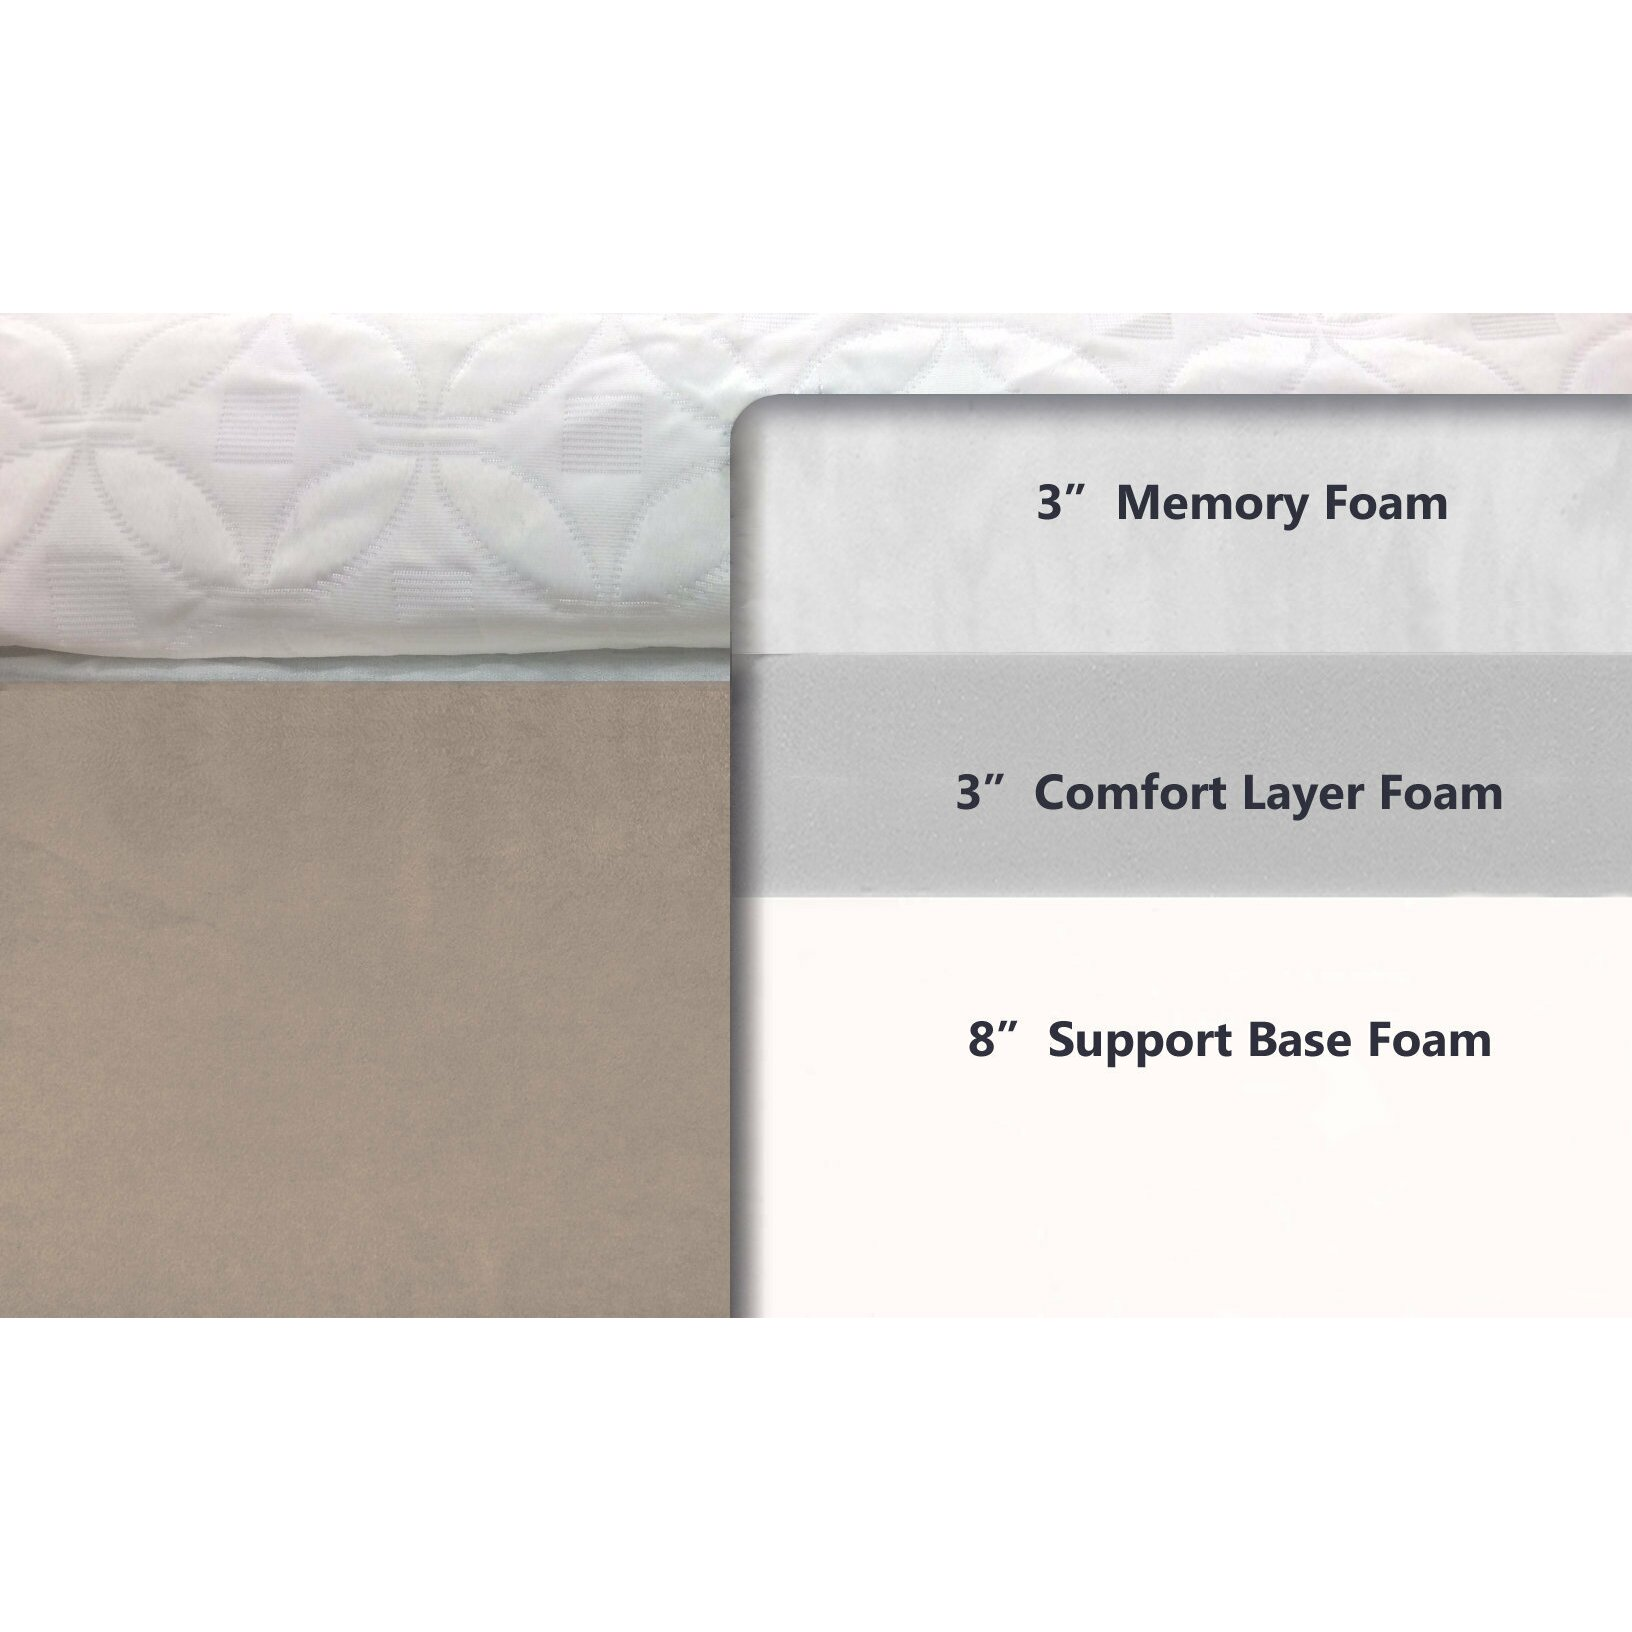 Luxury solutions 14 memory foam mattress reviews wayfair Mattress sale memory foam